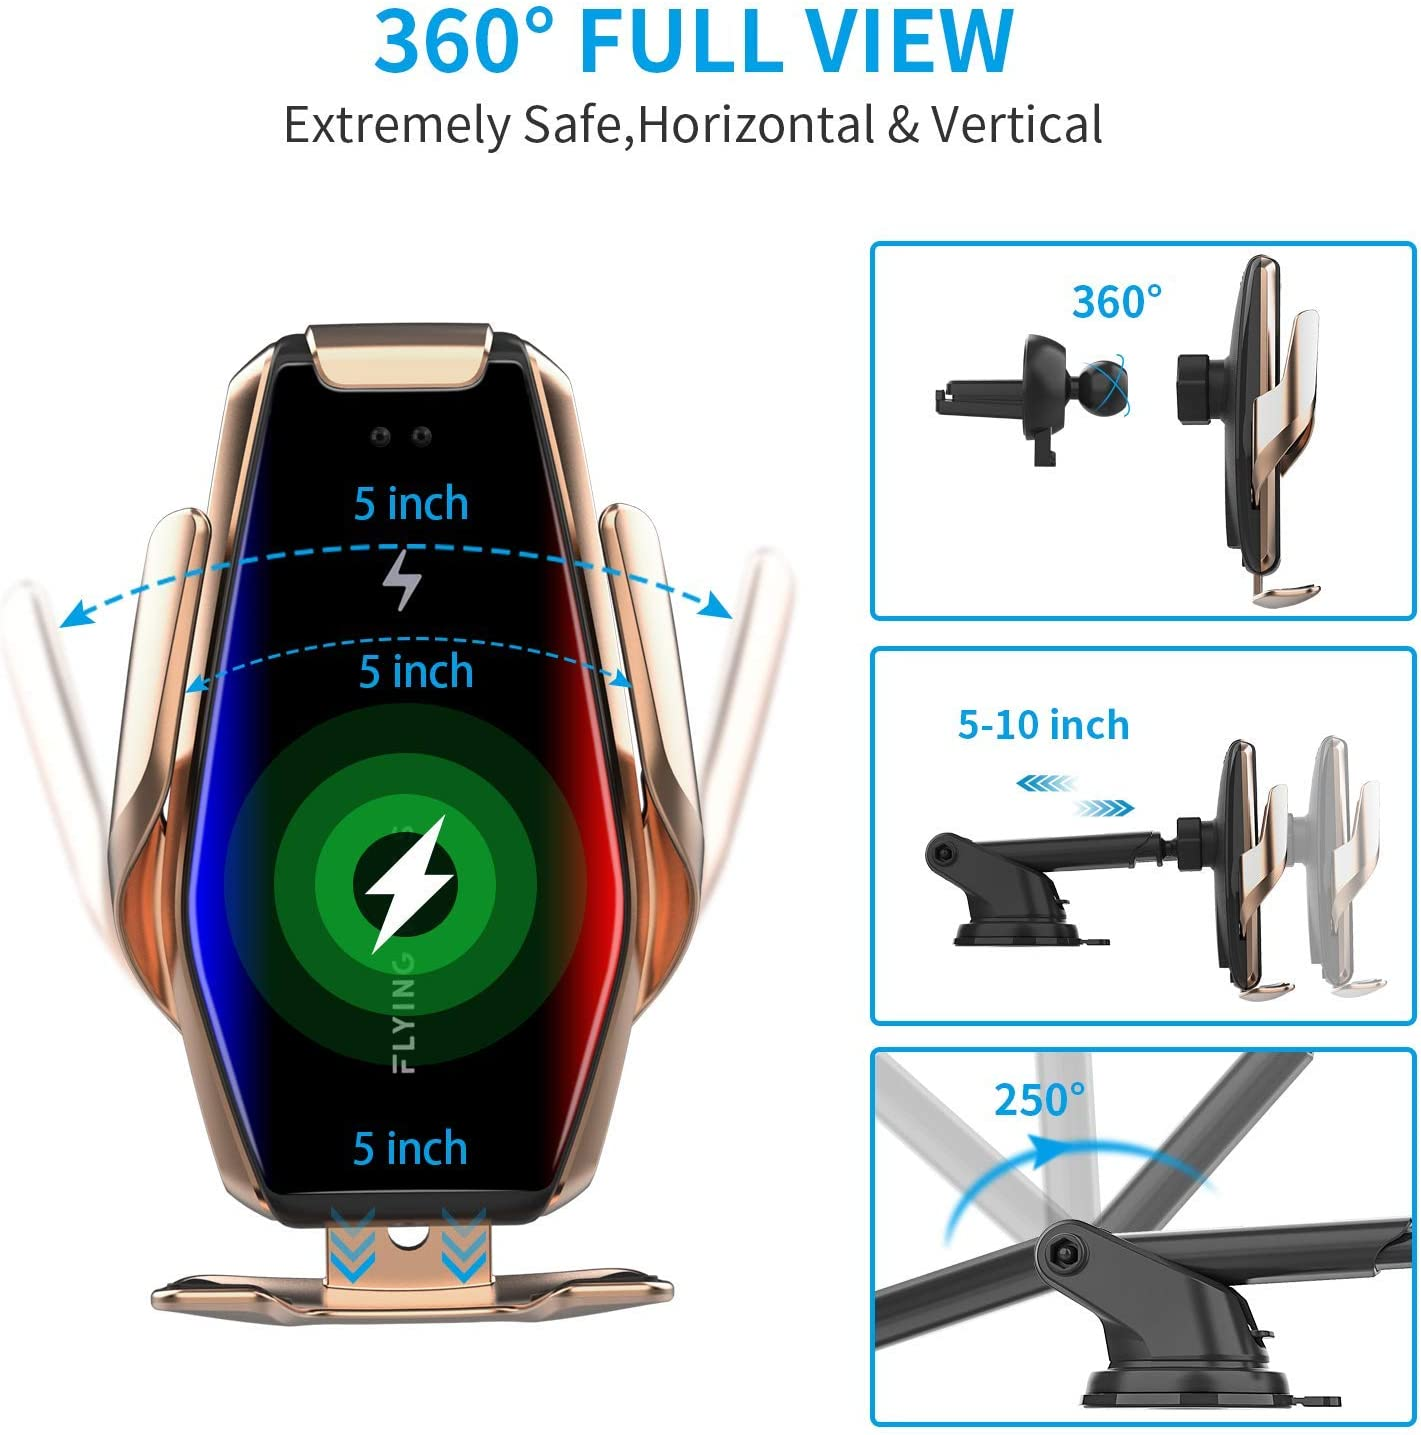 Auto-Clamping Wireless Car Charger Mount,Yianerm 2 in 1 Qi 15W//10W//7.5W Fast Wireless Inductive Air Vent//Dashboard Mount Phone Holder Compatible with iPhone 8//8P//X Samsung Galaxy S9+//S8+//S7 Gold